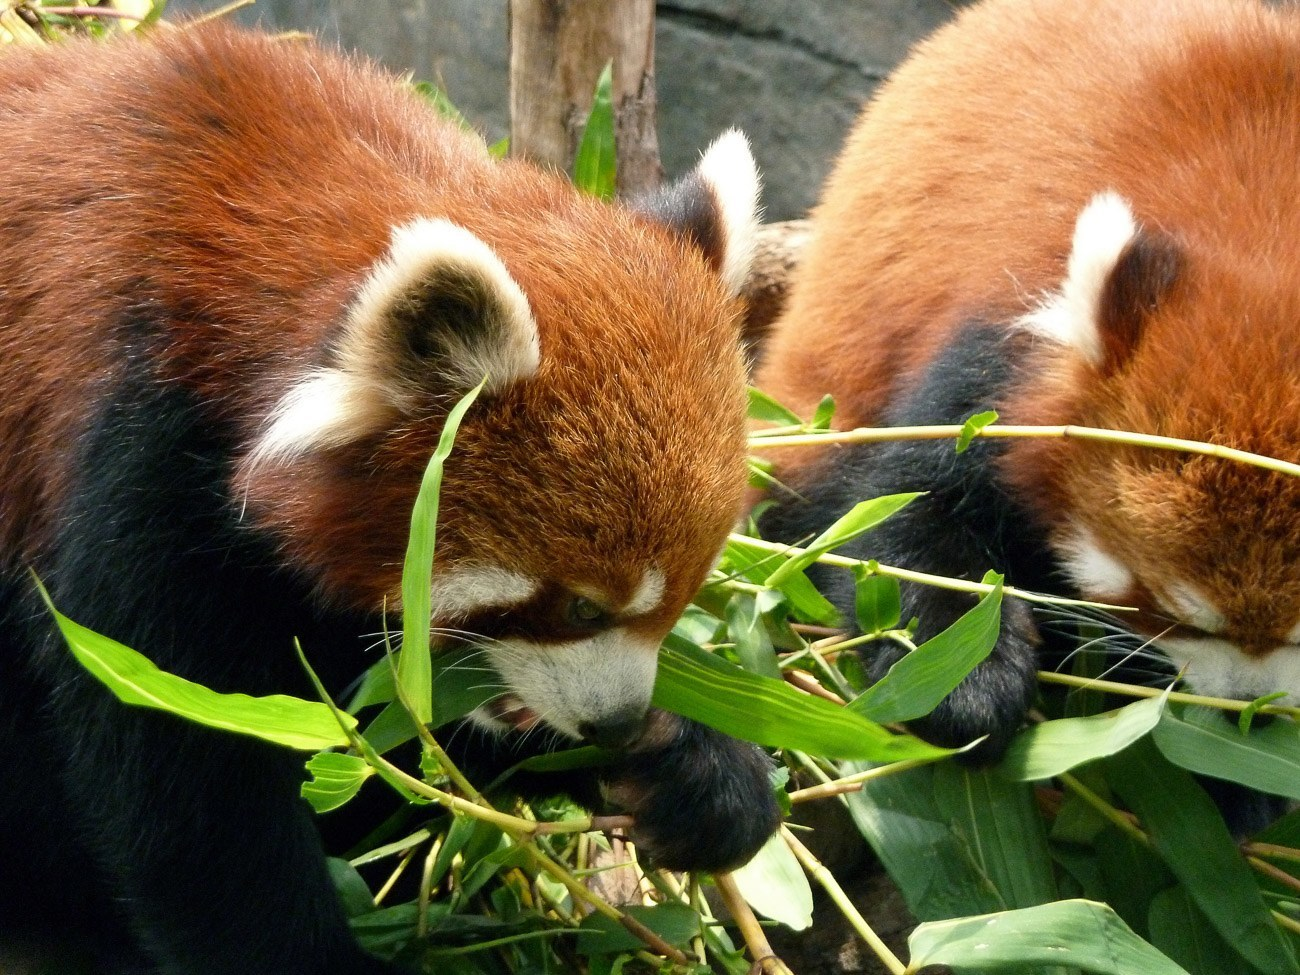 We were able to see the red pandas behind-the-scenes while resting in their private enclosure at Ocean Park in Hong Kong